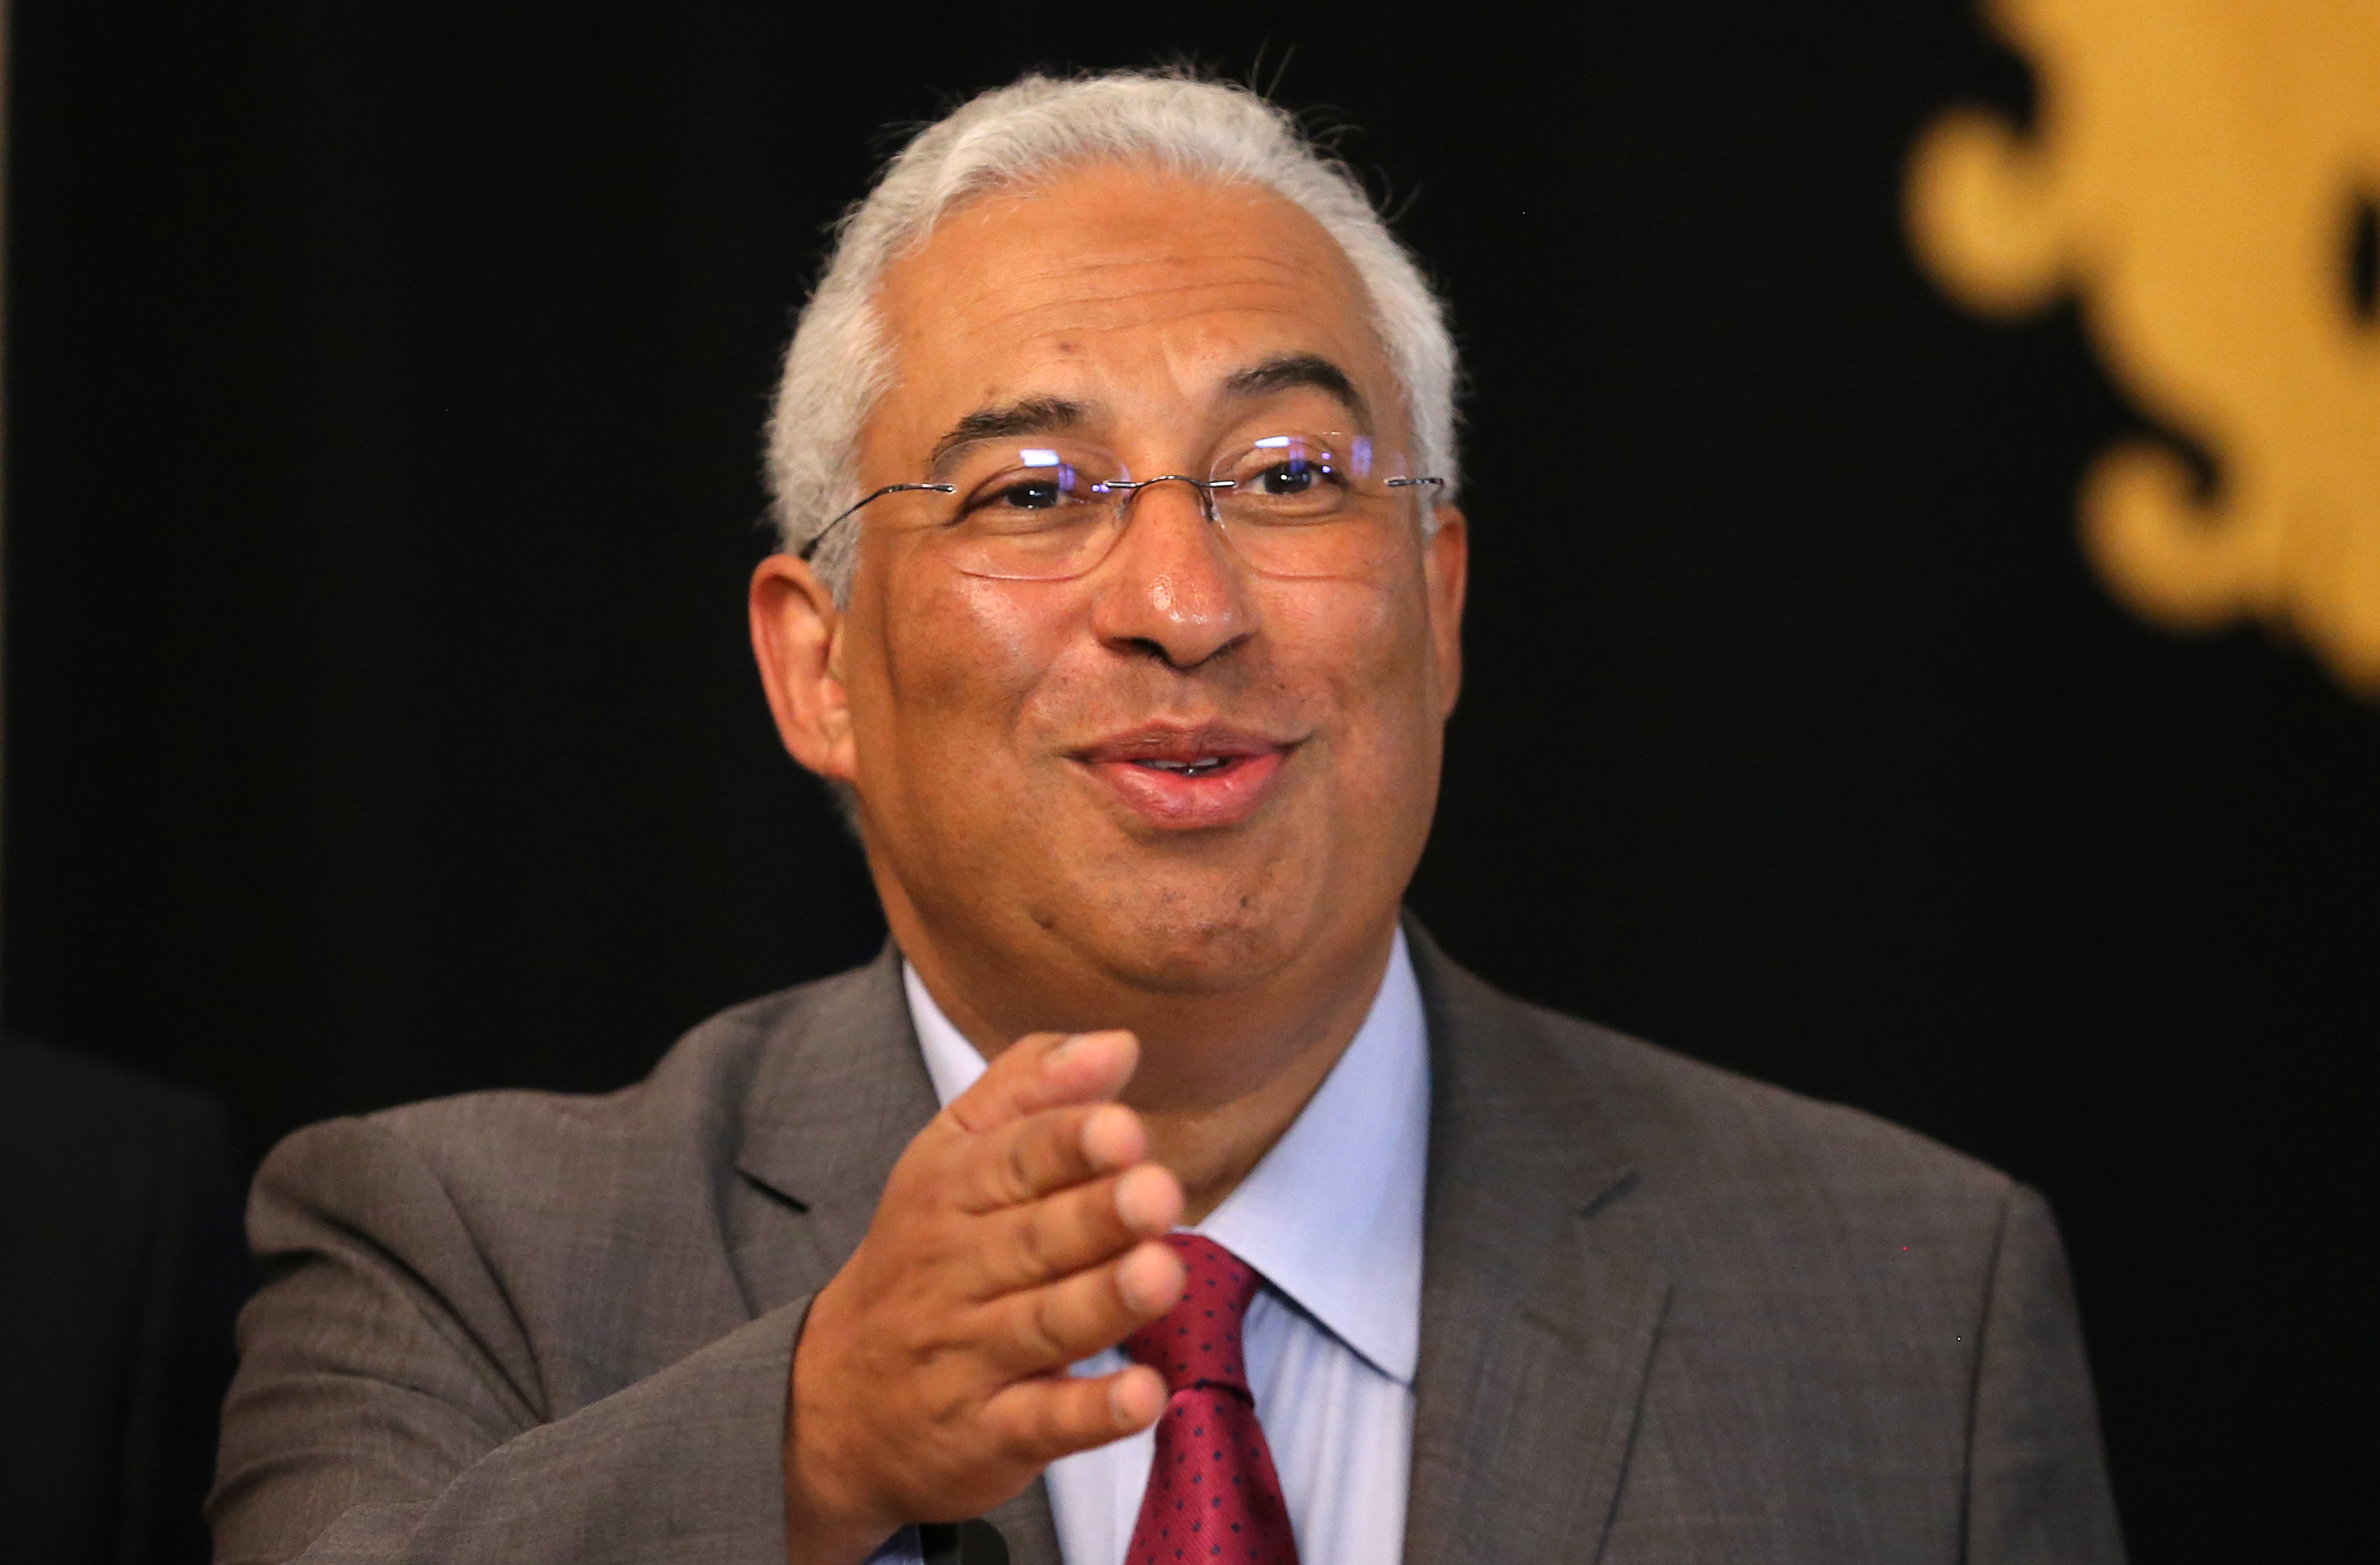 In this Friday, Nov. 20, 2015 file photo, Portuguese Socialist Party leader Antonio Costa talks to journalists after a meeting with President Anibal Cavaco Silva, at the Belem presidential palace in Lisbon.